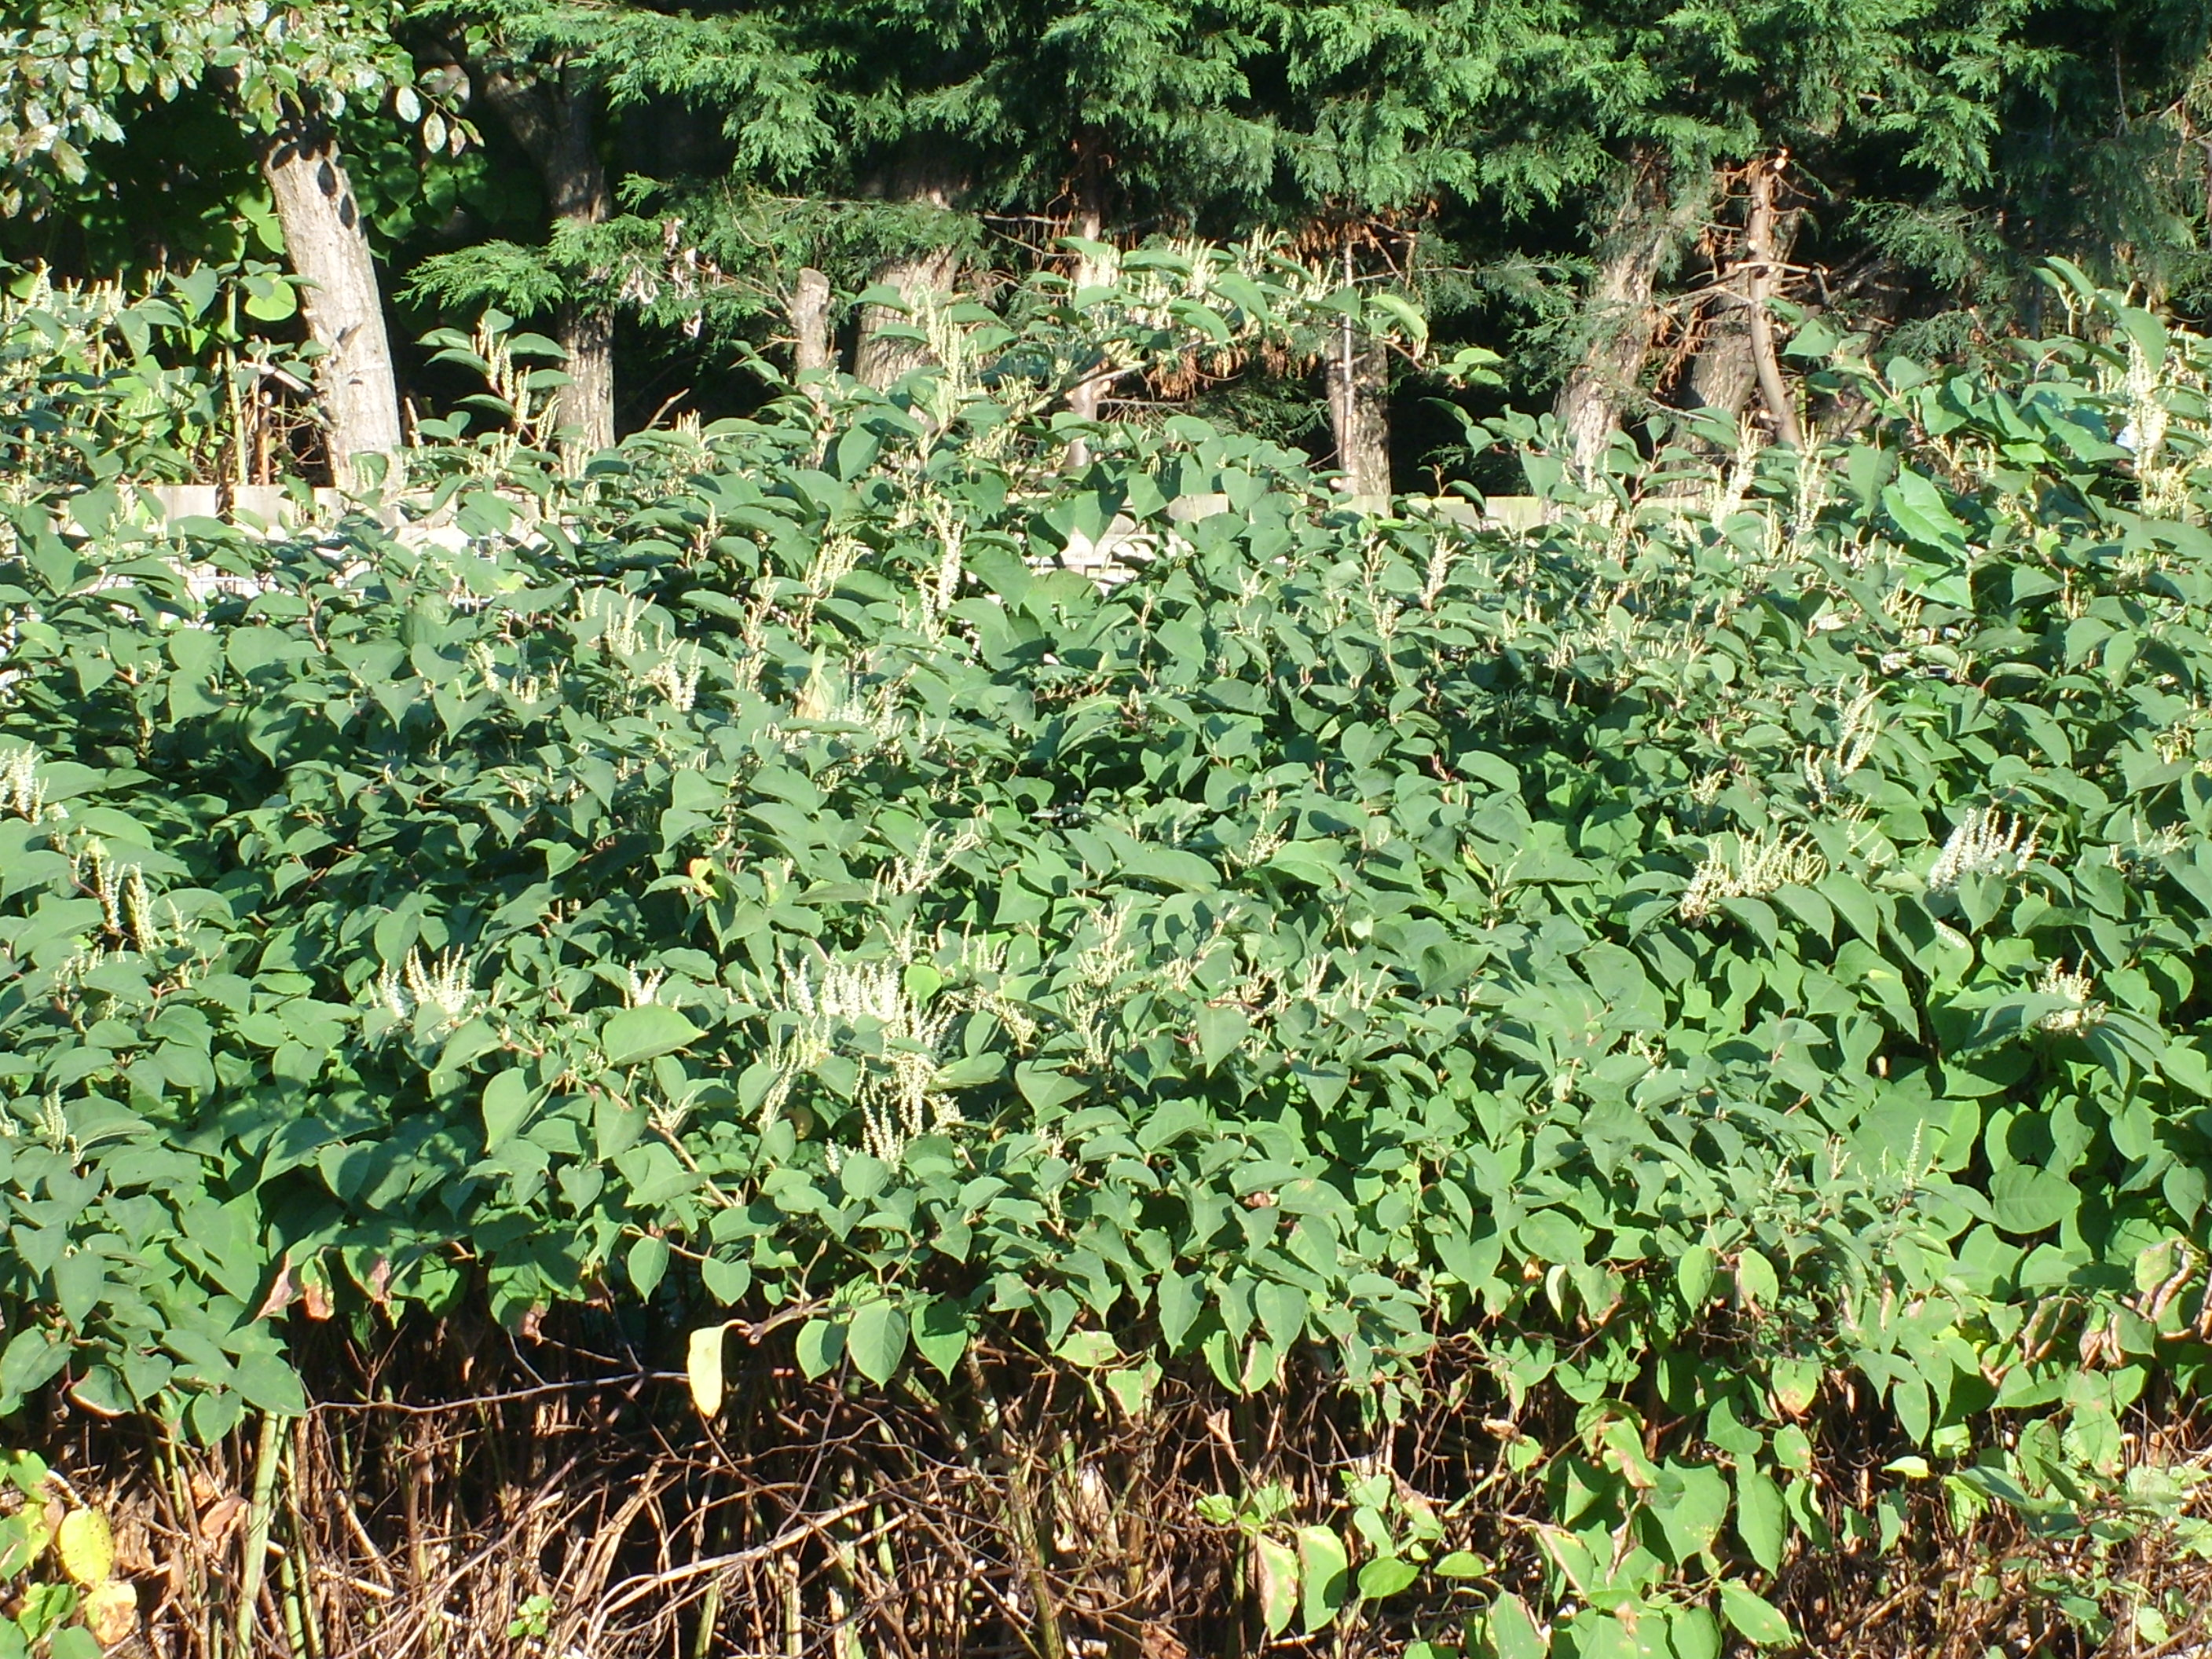 Natural Resources Wales / Japanese knotweed: What you need to know